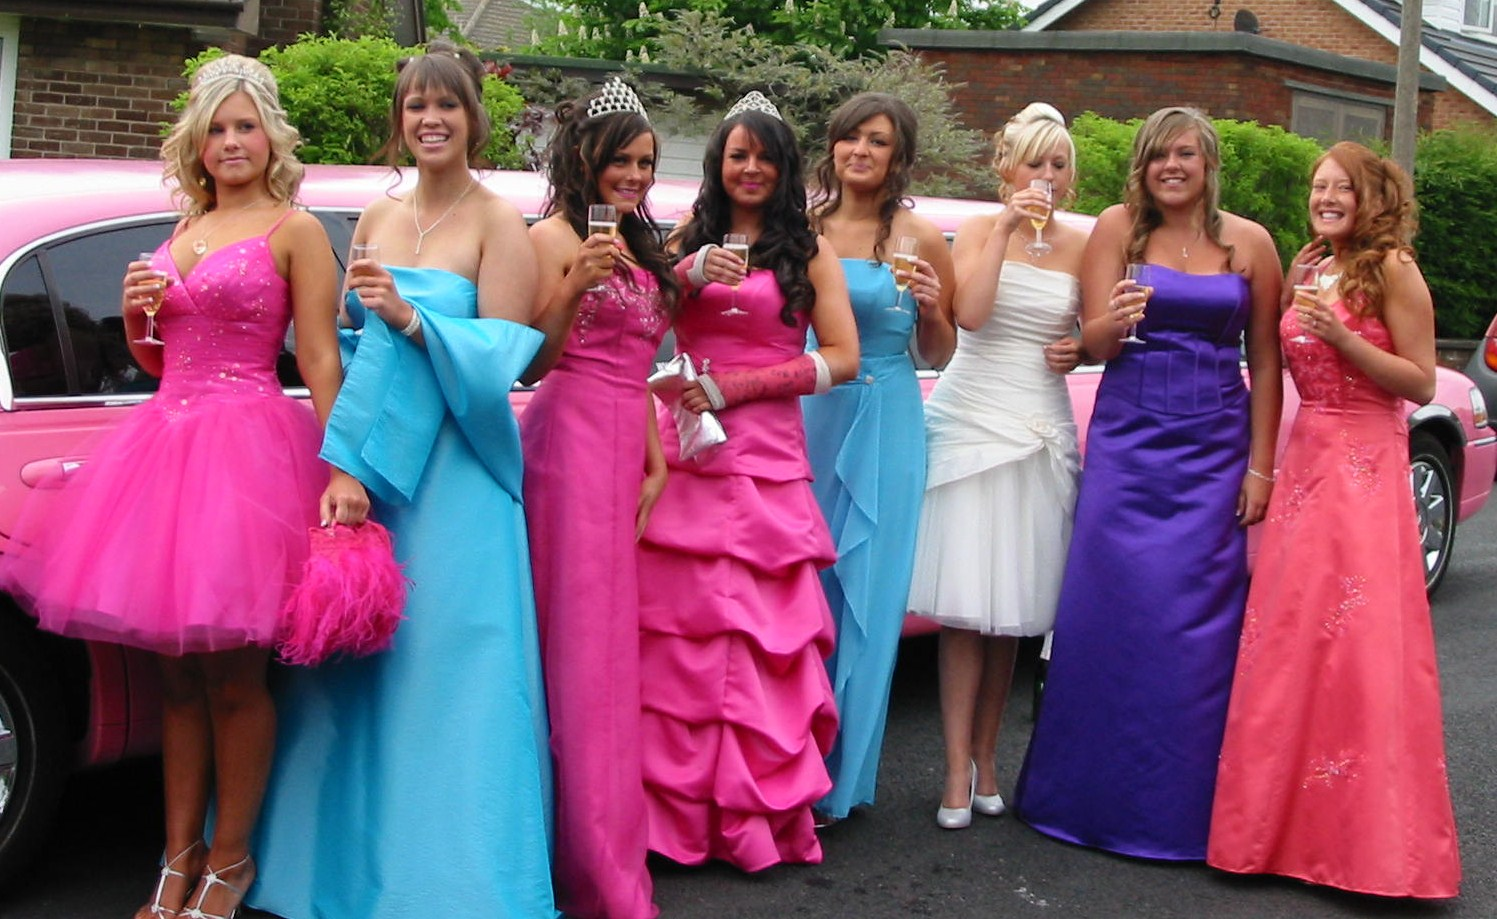 parties edinburgh , pyjama parties,sweet 16, prom party ideas, party